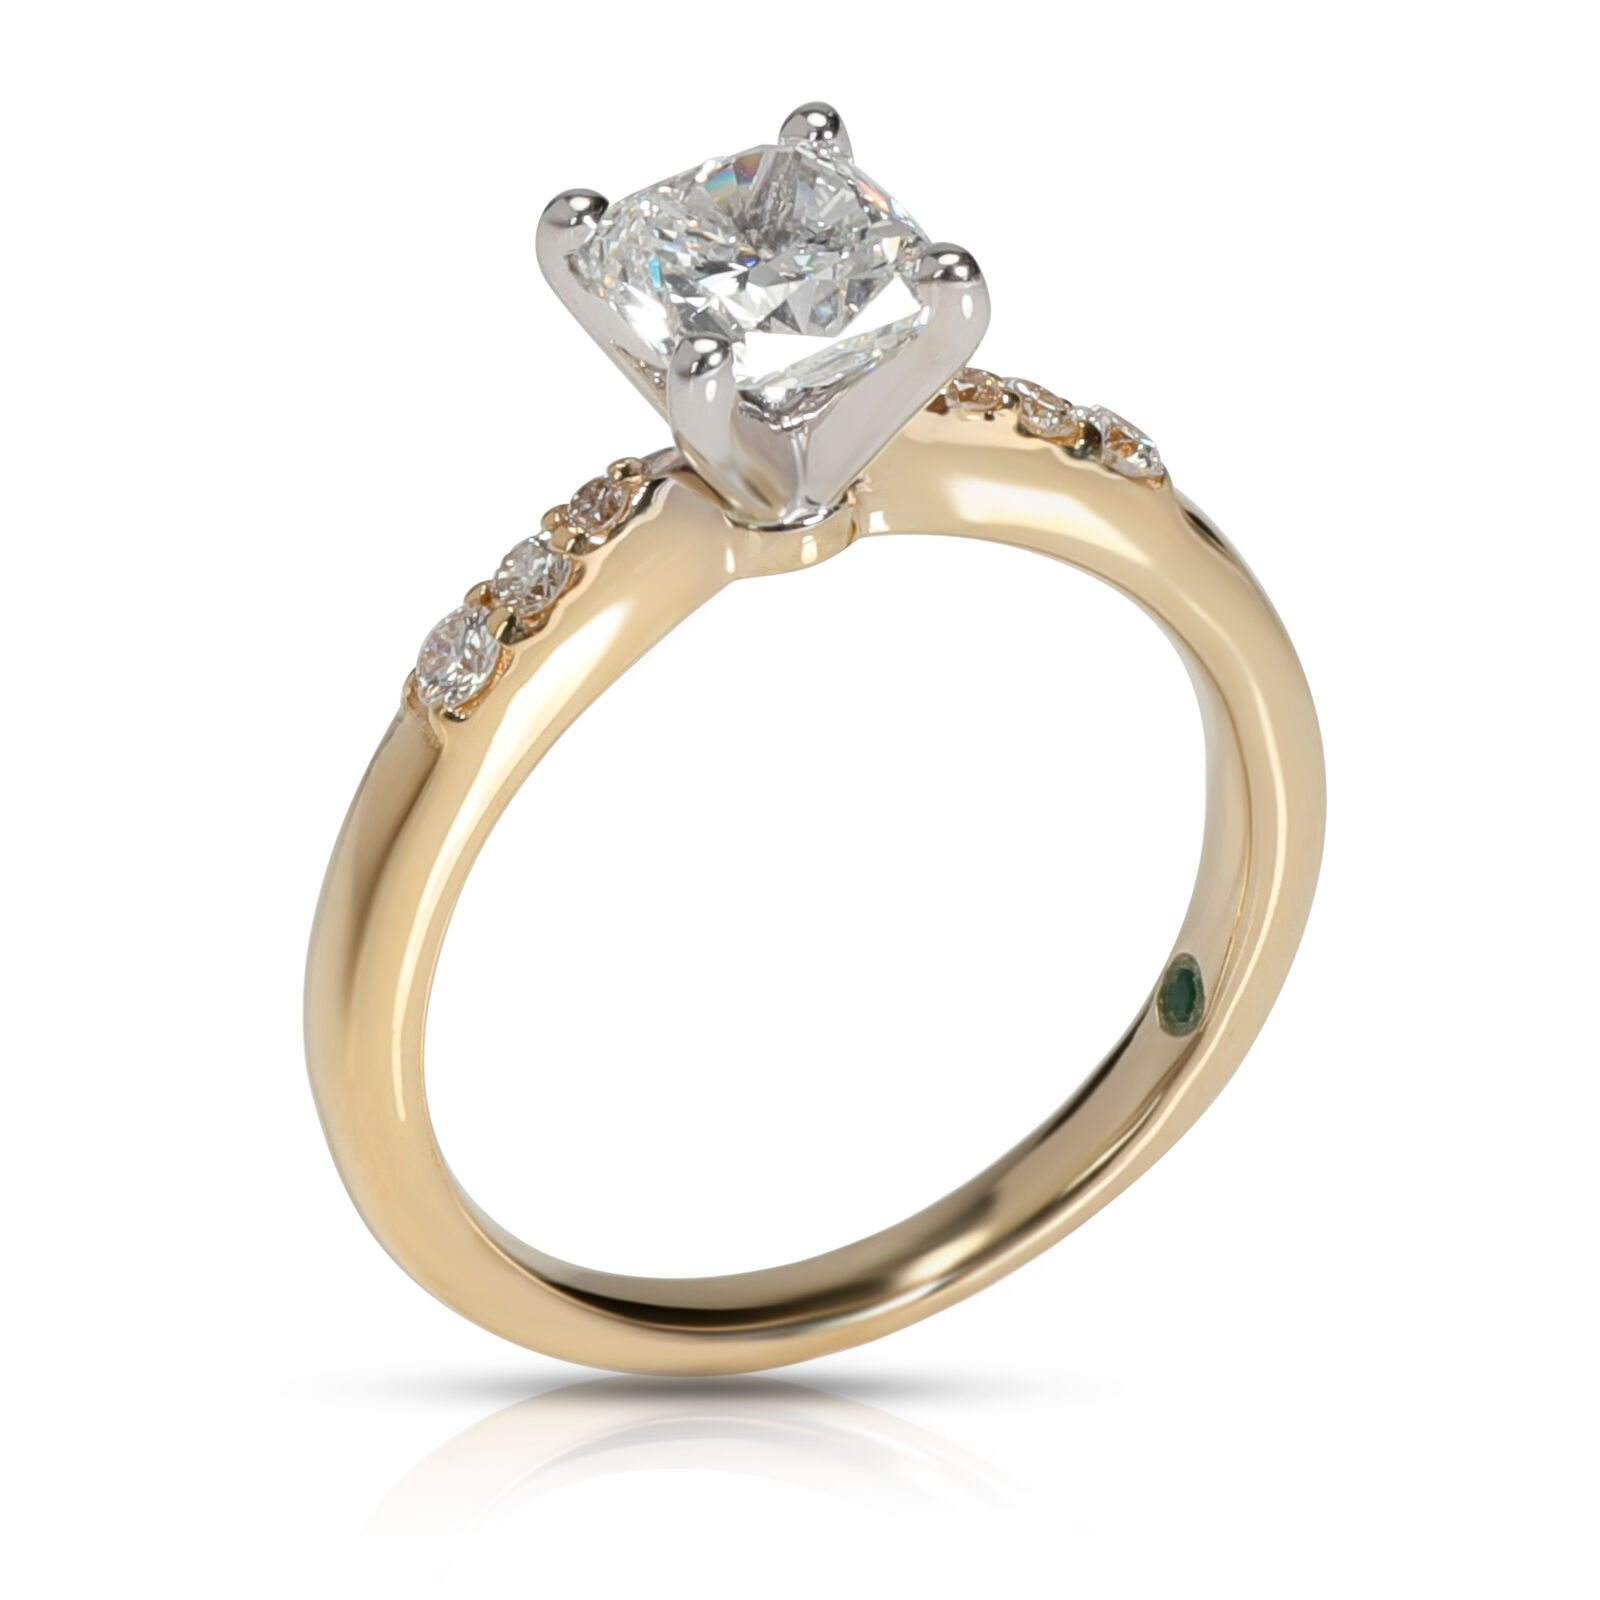 Image of GIA Certified Cushion Diamond Engagement Ring in 14KT Yellow Gold F SI2 1.11 CTW